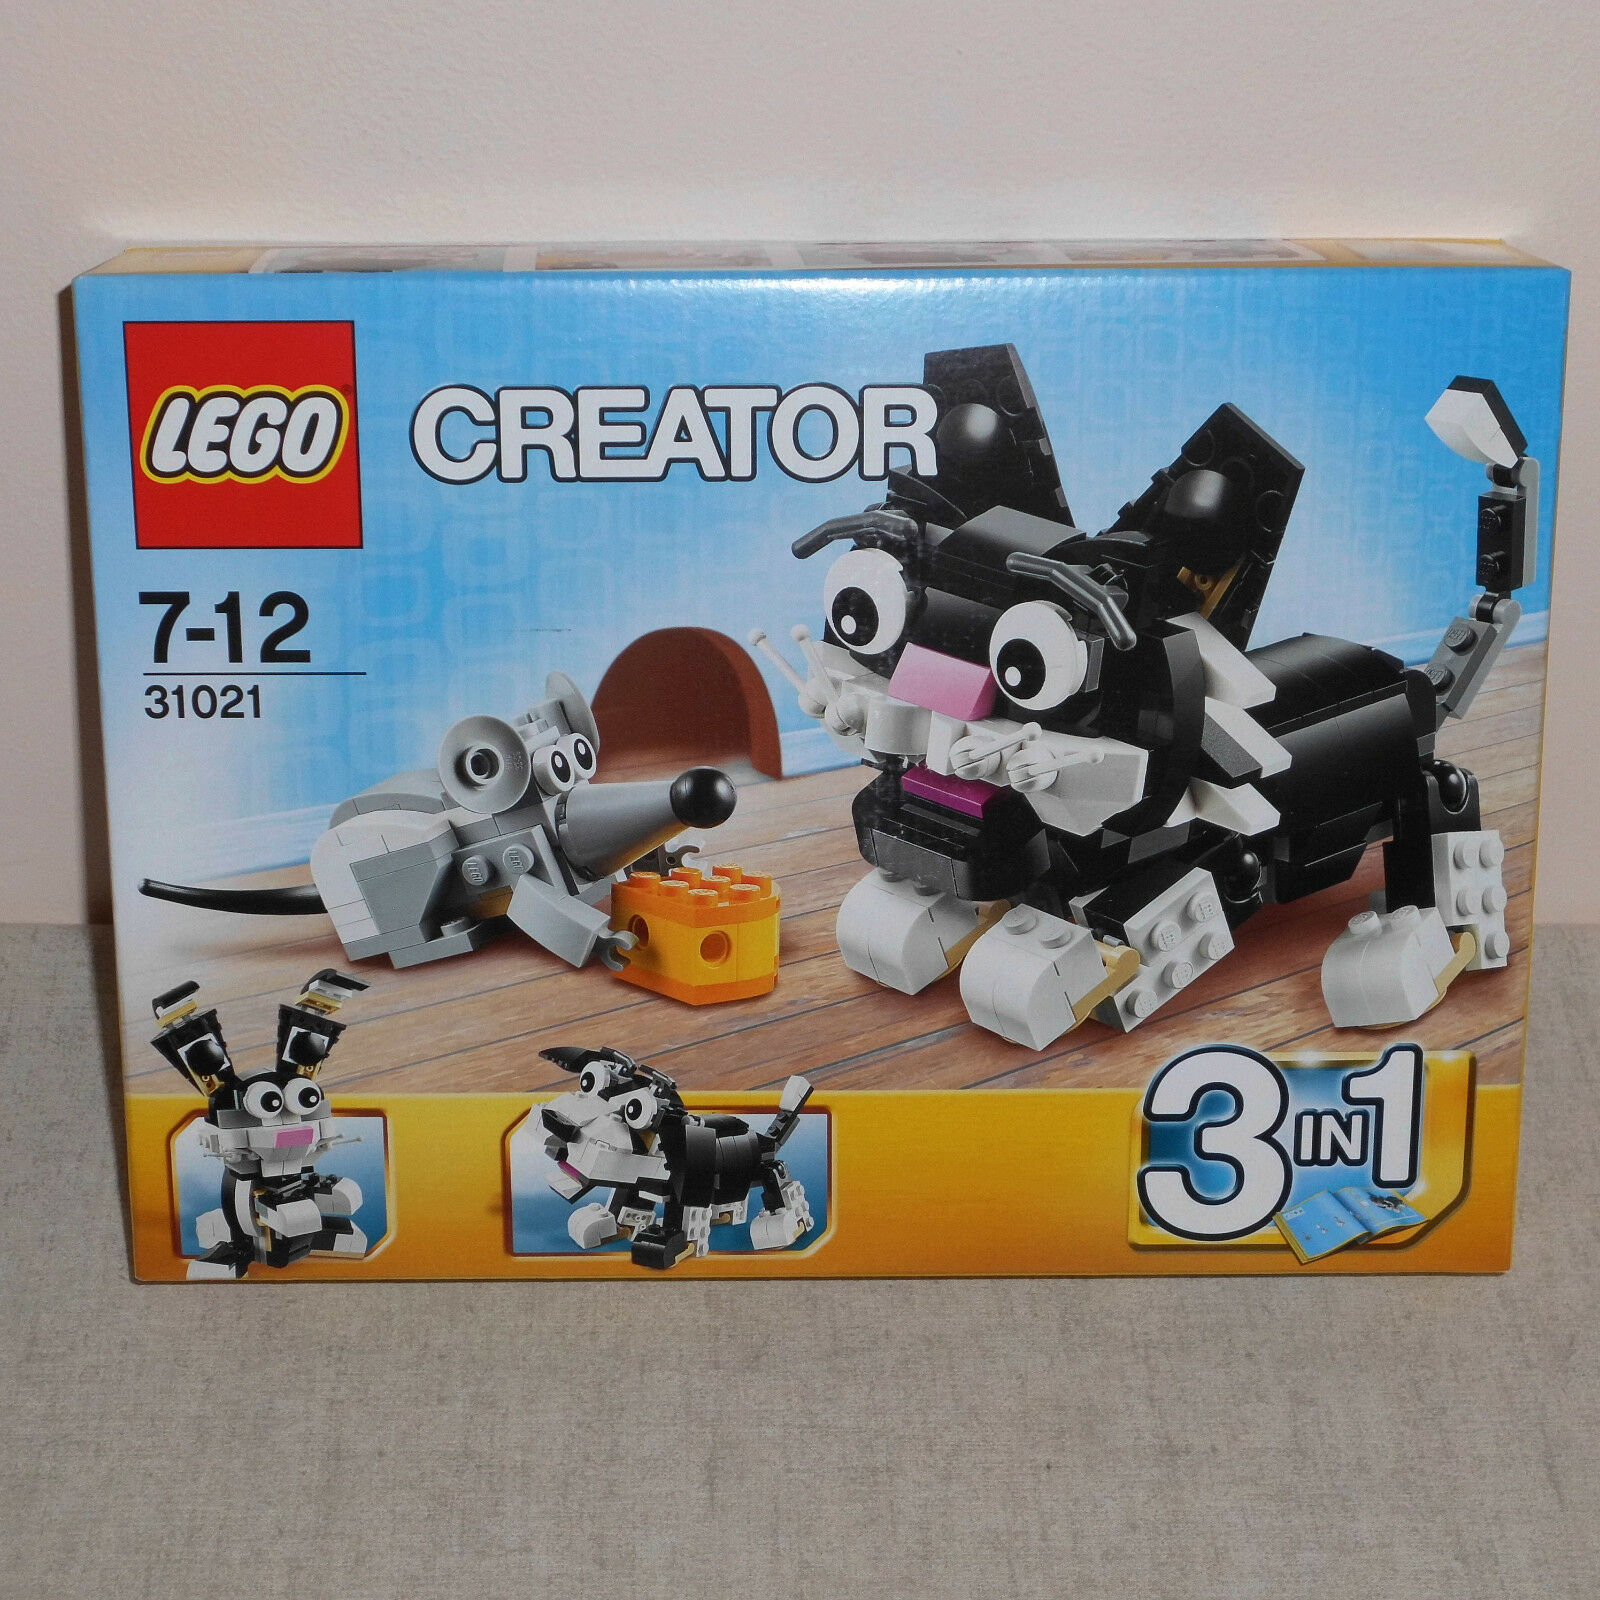 Lego 31021 31021 31021 Furry Creatures 3 in 1 Cat & Mouse BNIB Discontinued Set. 975349